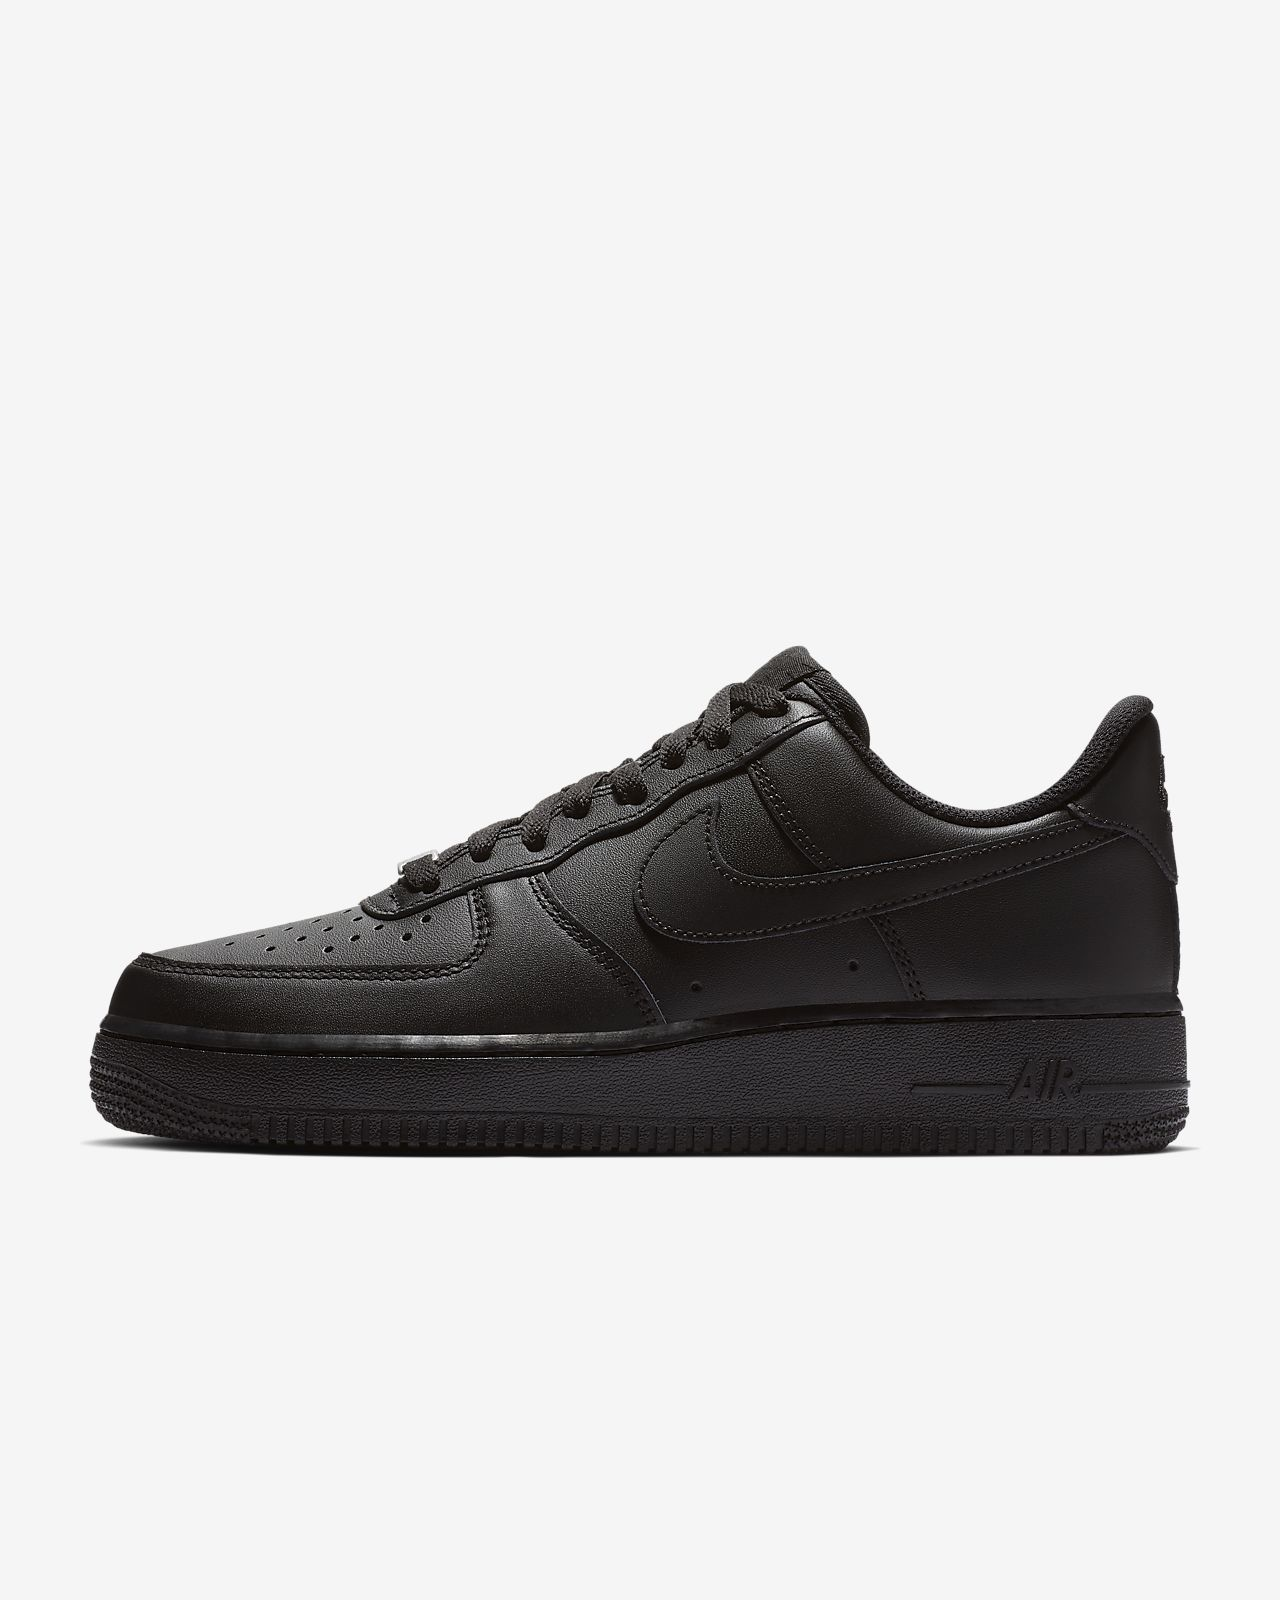 new concept 8b85b 54cd1 ... Chaussure Nike Air Force 1  07 pour Femme